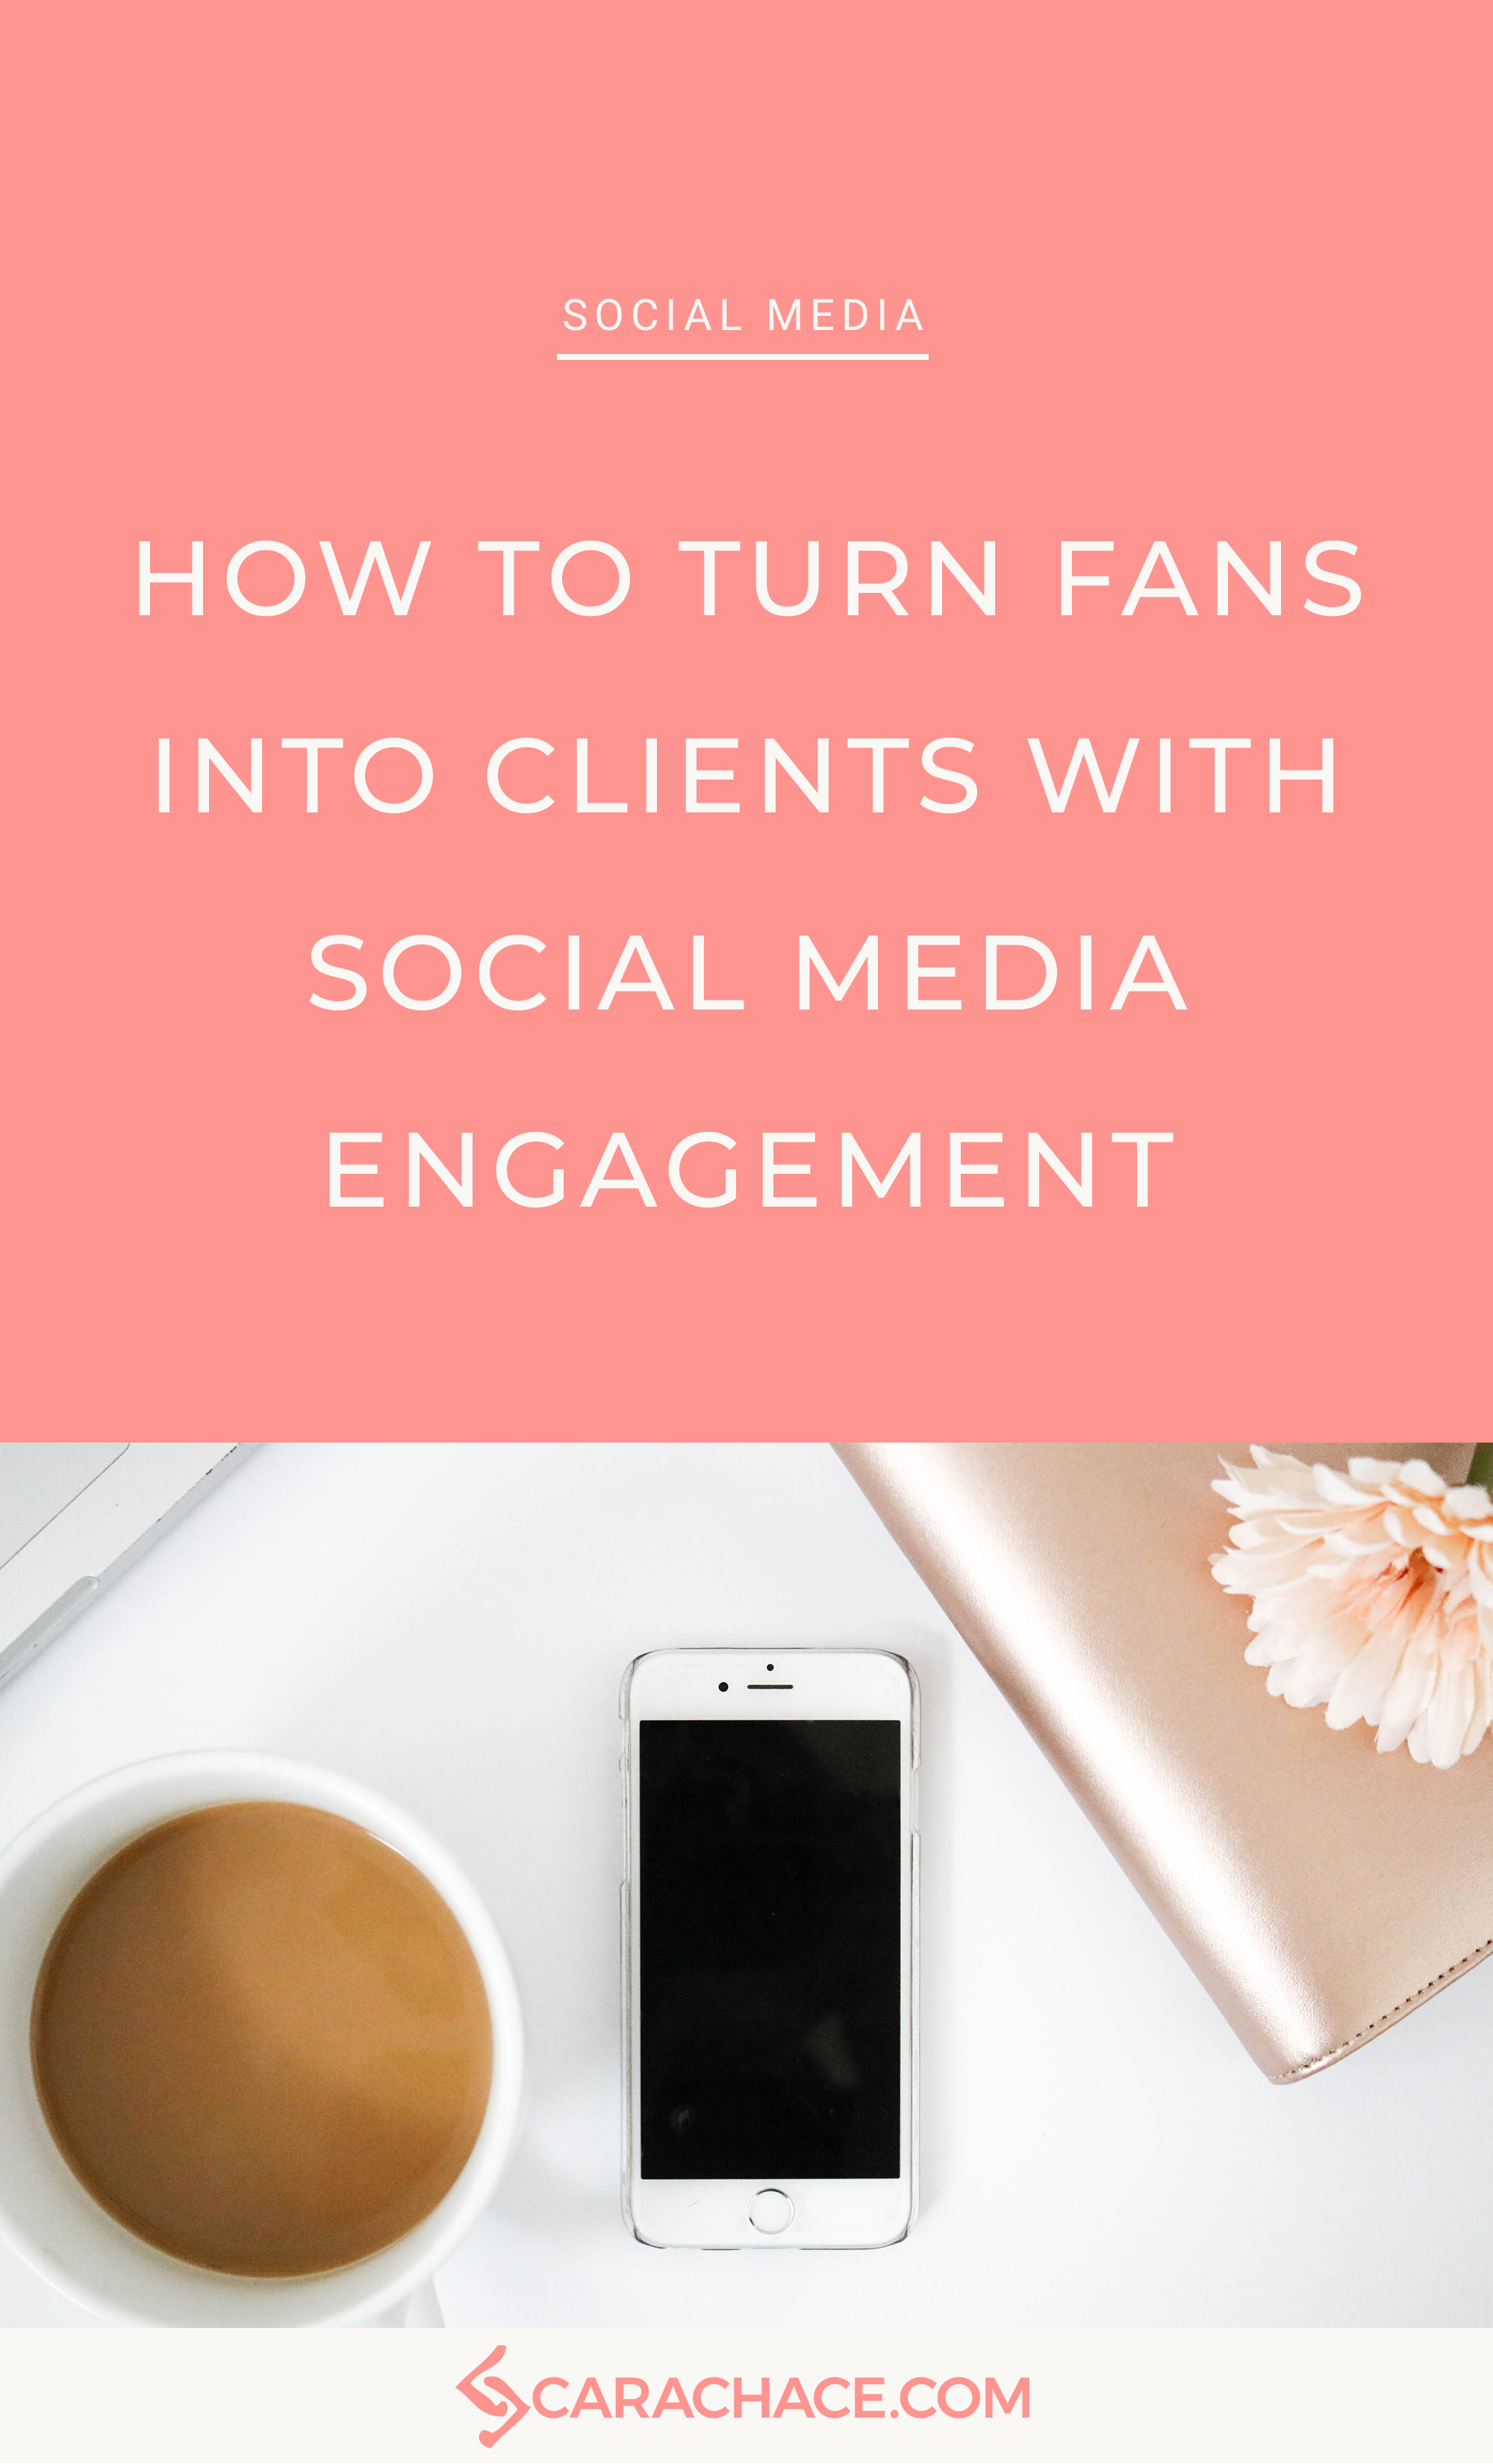 thumbnail-HOW-TO-TURN-FANS-INTO-CLIENTS-WITH-SOCIAL-MEDIA-ENGAGEMENT.png